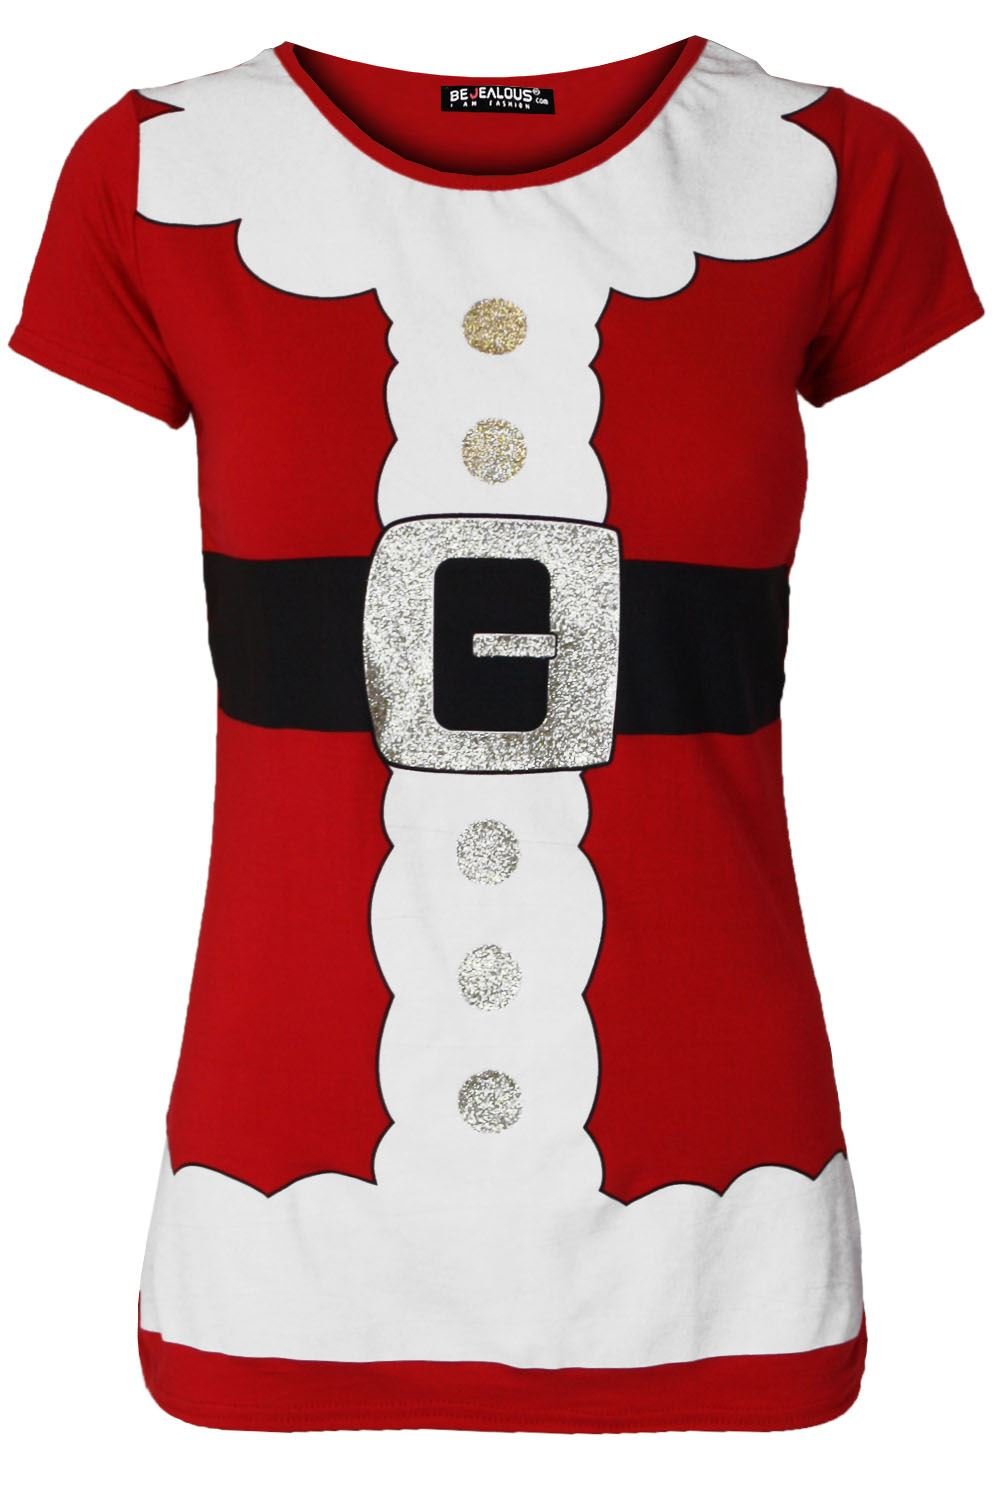 Christmas Top.Details About Ladies Christmas Top Womens Elf Candy Stick Belt Button Costume Xmas Tee T Shirt